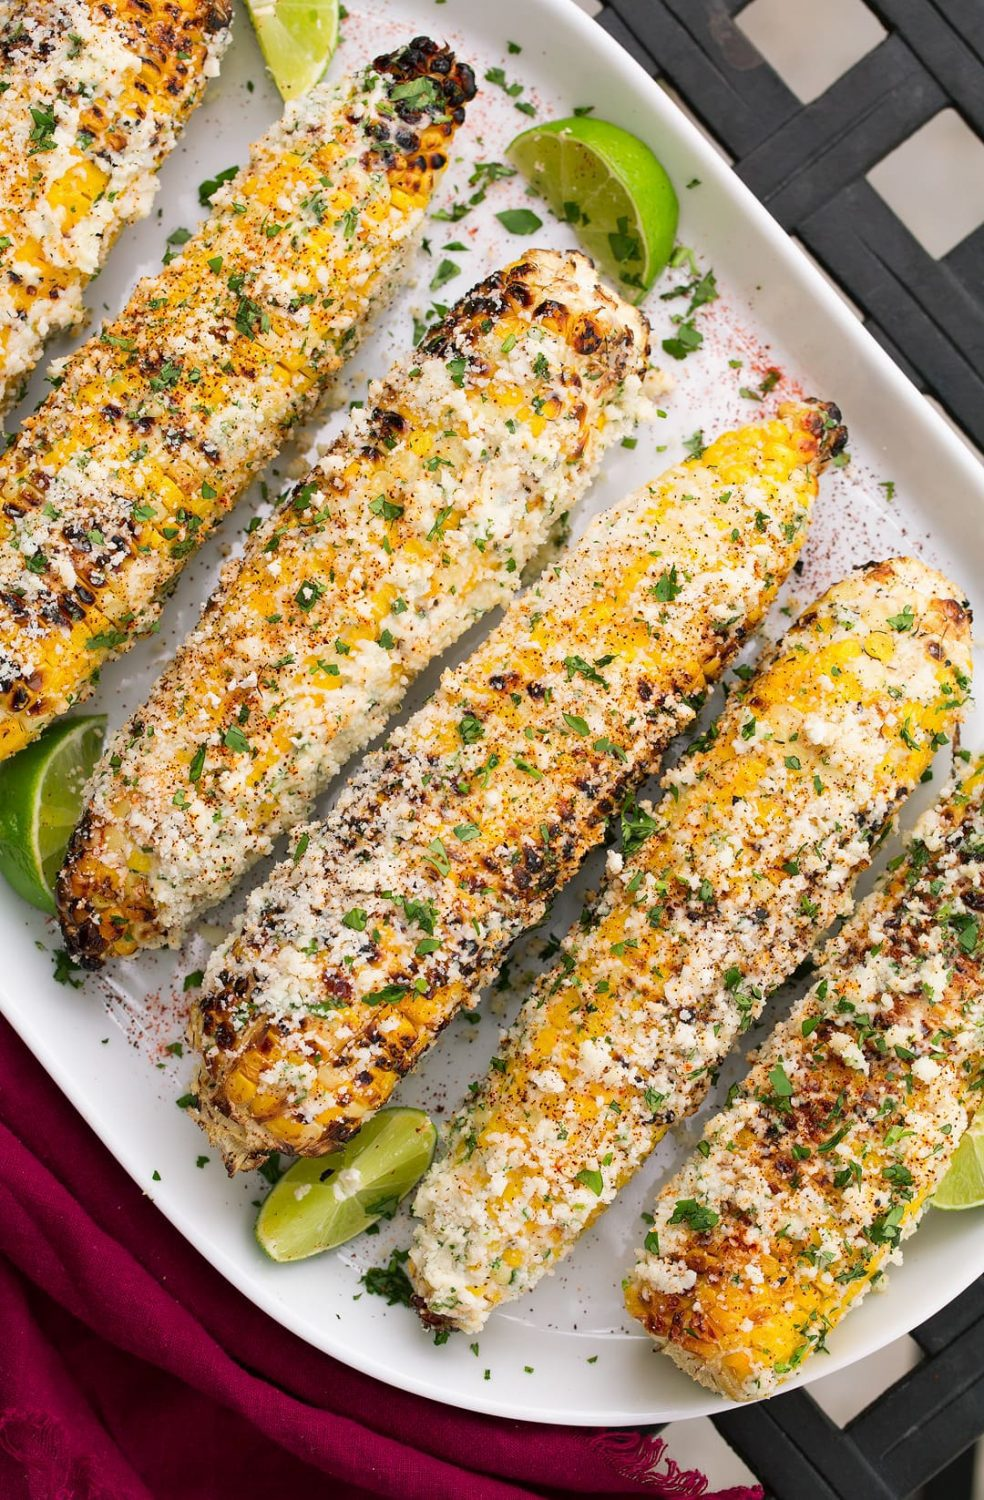 Grilled Mexican Street Corn by Jaclyn at Cooking Classy